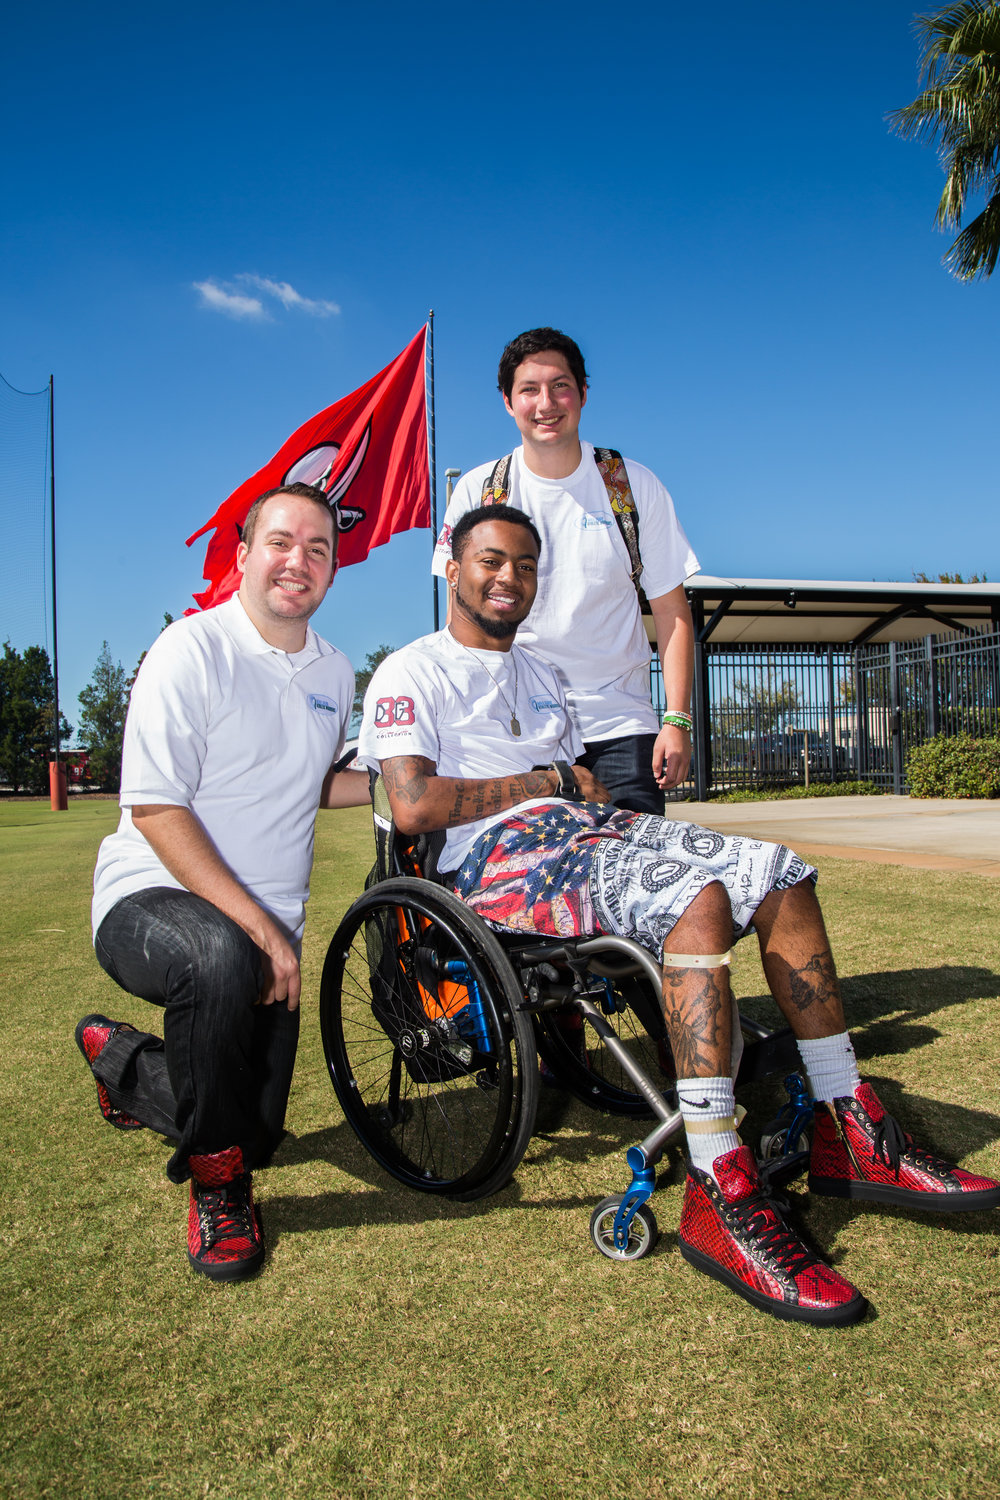 NFL Athletes & Celebs Are Rocking Fresh Kicks to Support Devon Gales - December 26, 2017